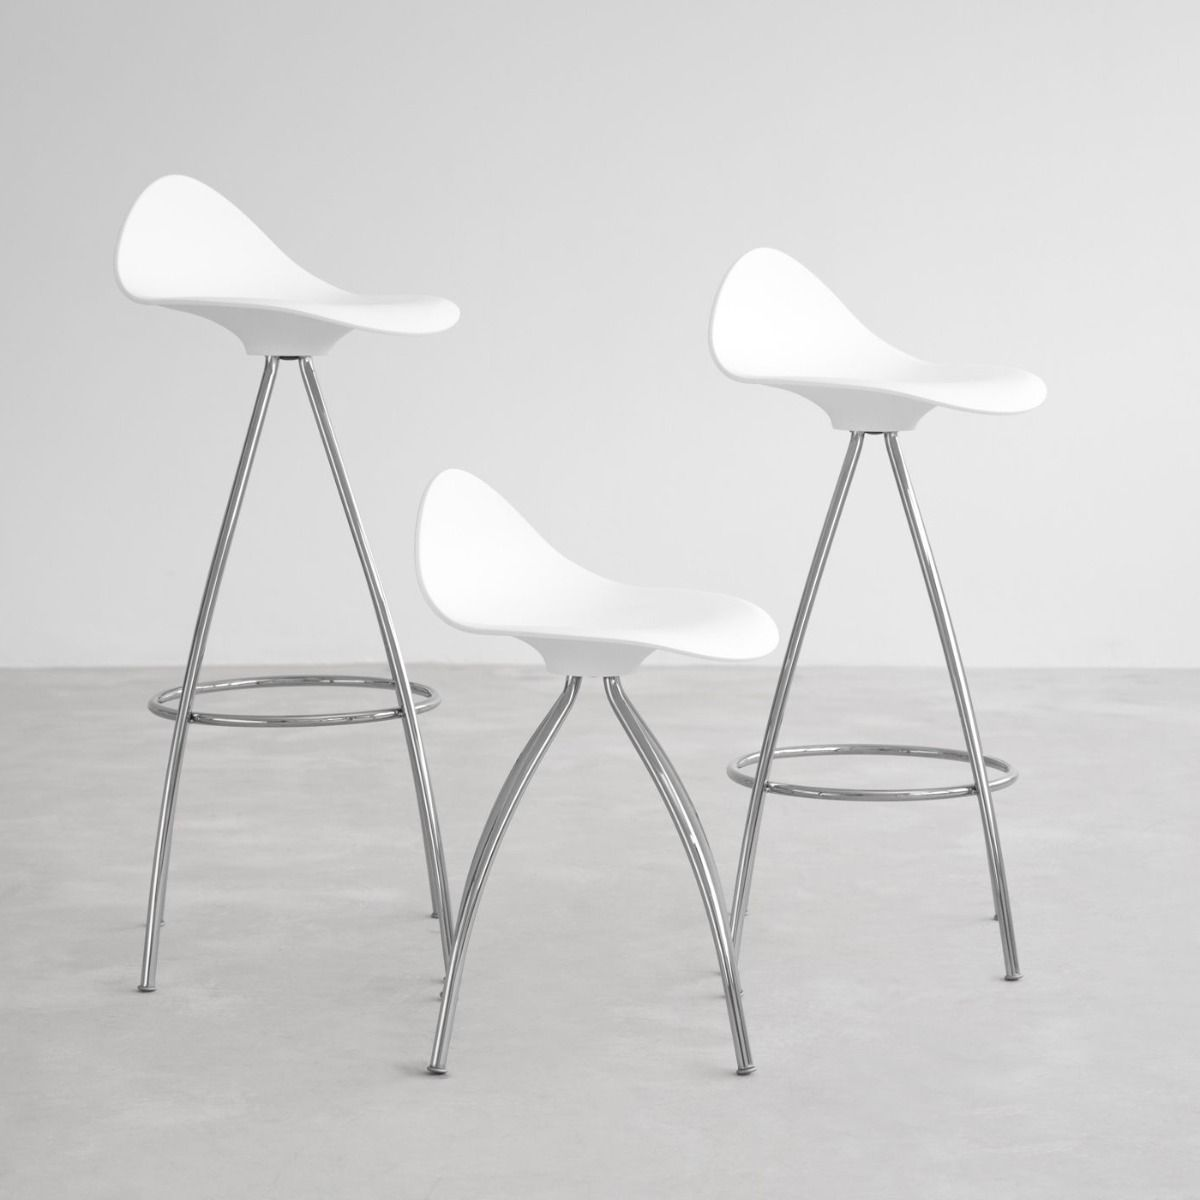 STUA Onda monochrome bar stool showing the three different heights